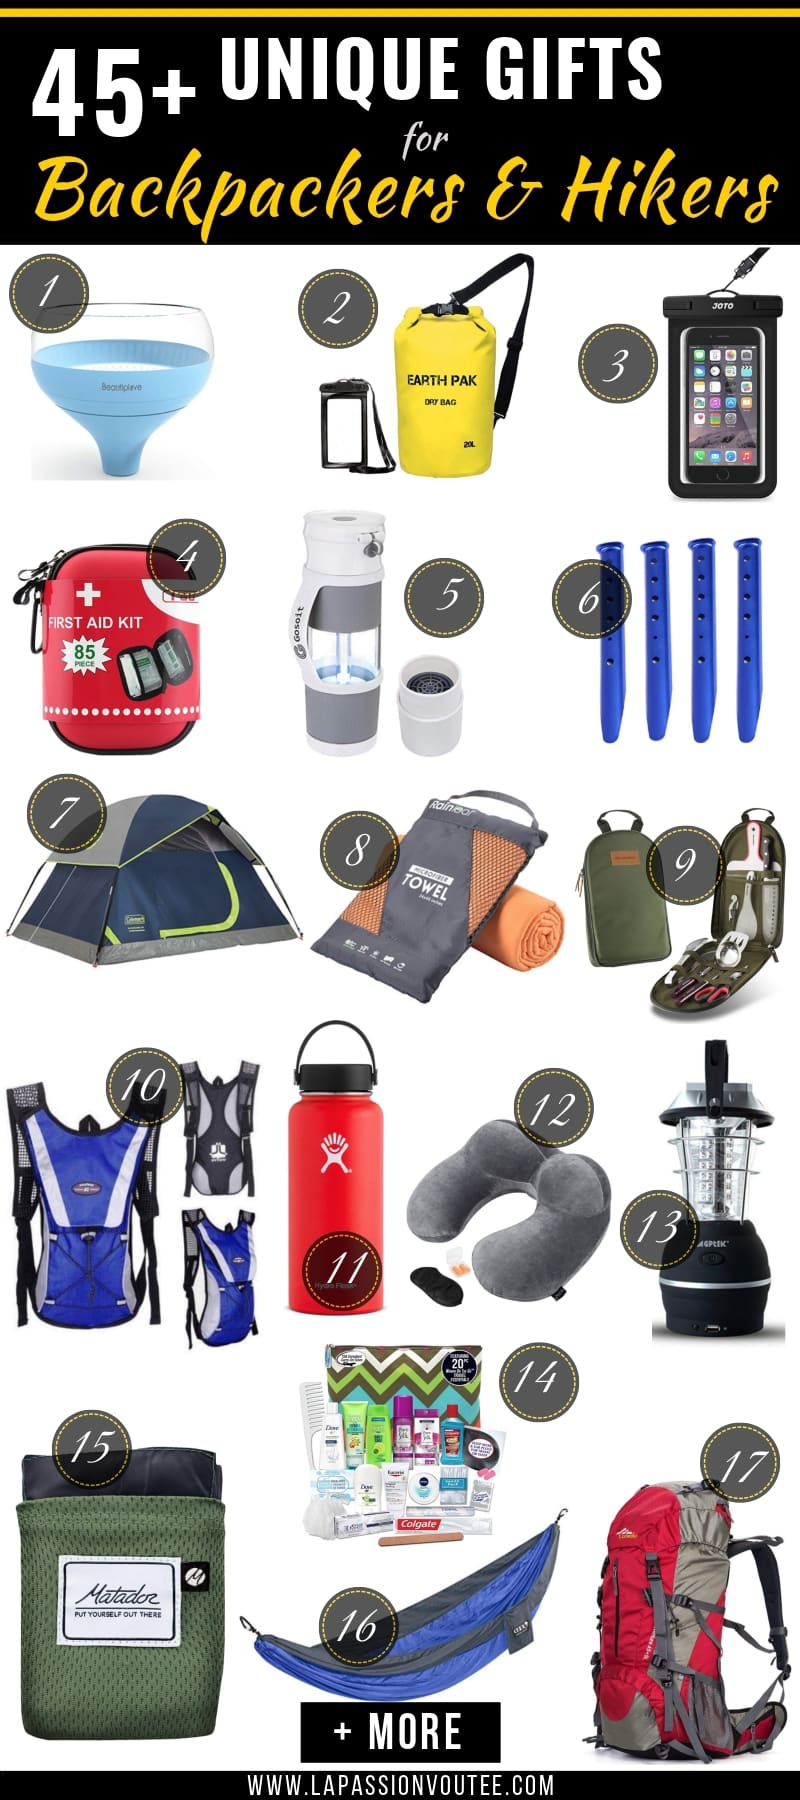 Your ultimate guide to the best gifts for backpackers, hikers, and adventure seekers. Everything you need to know before getting the wanderlust traveler a present today.